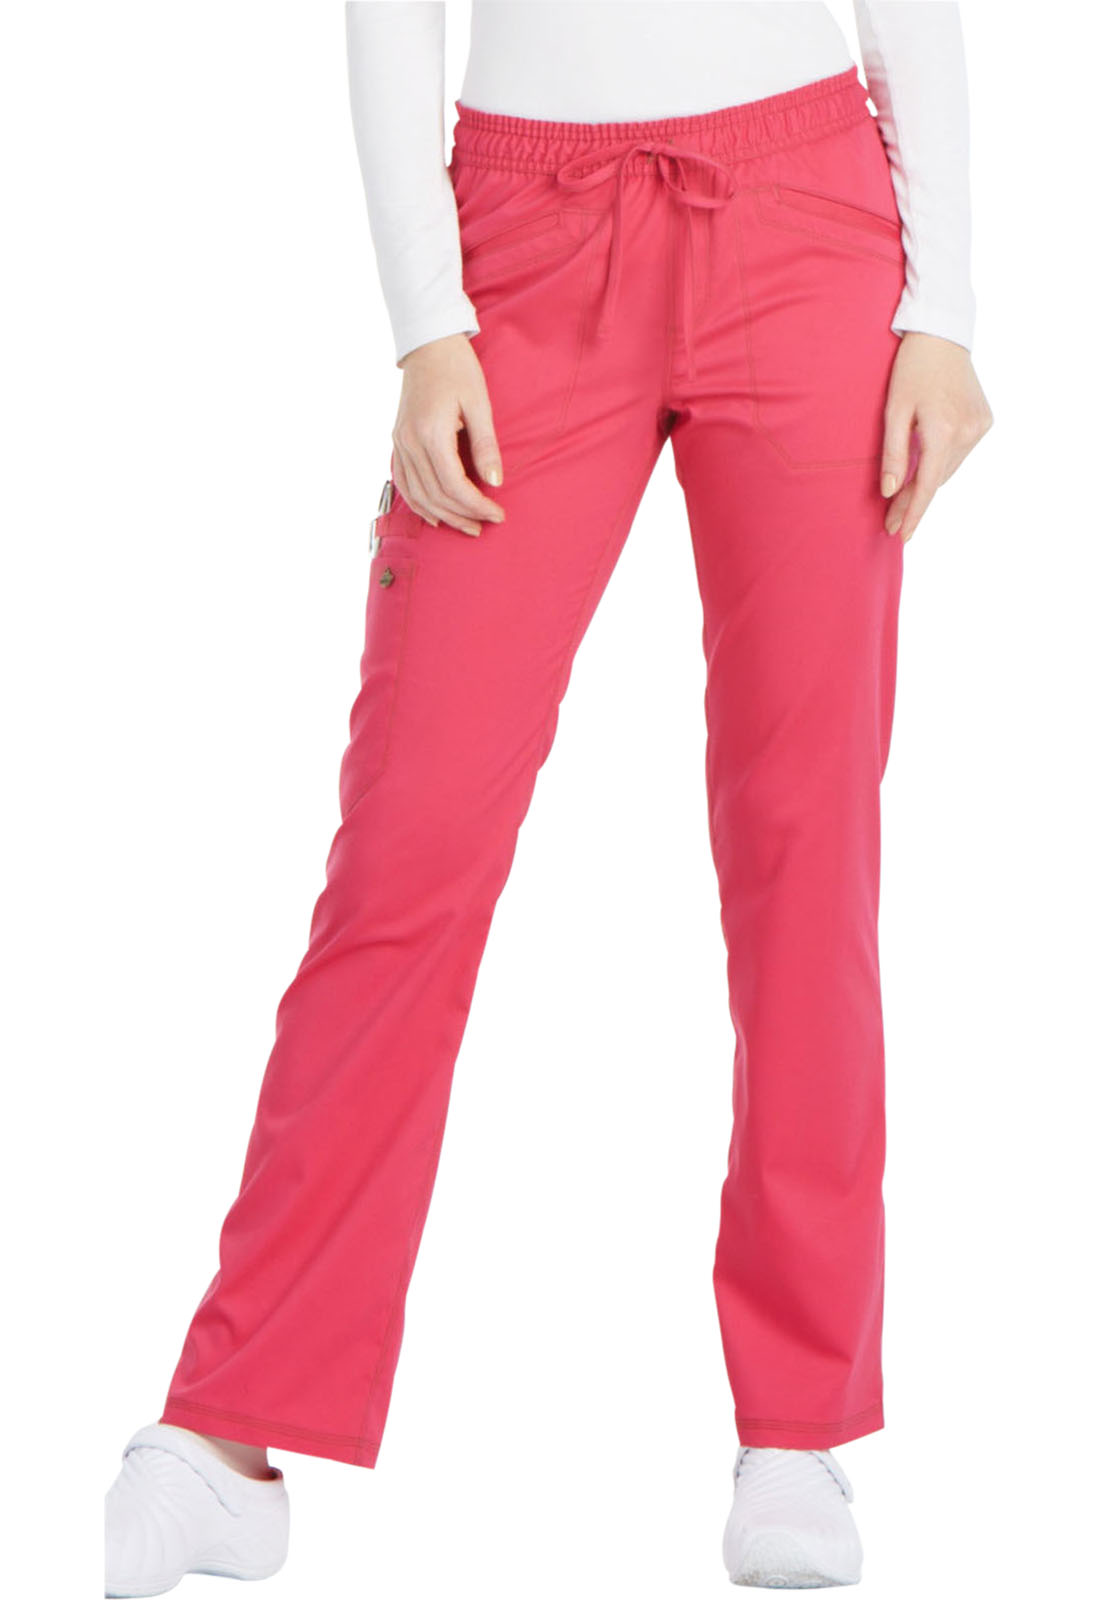 232068a9c91 Essence Mid Rise Straight Leg Drawstring Pant in Hot Pink DK106-HPKZ ...